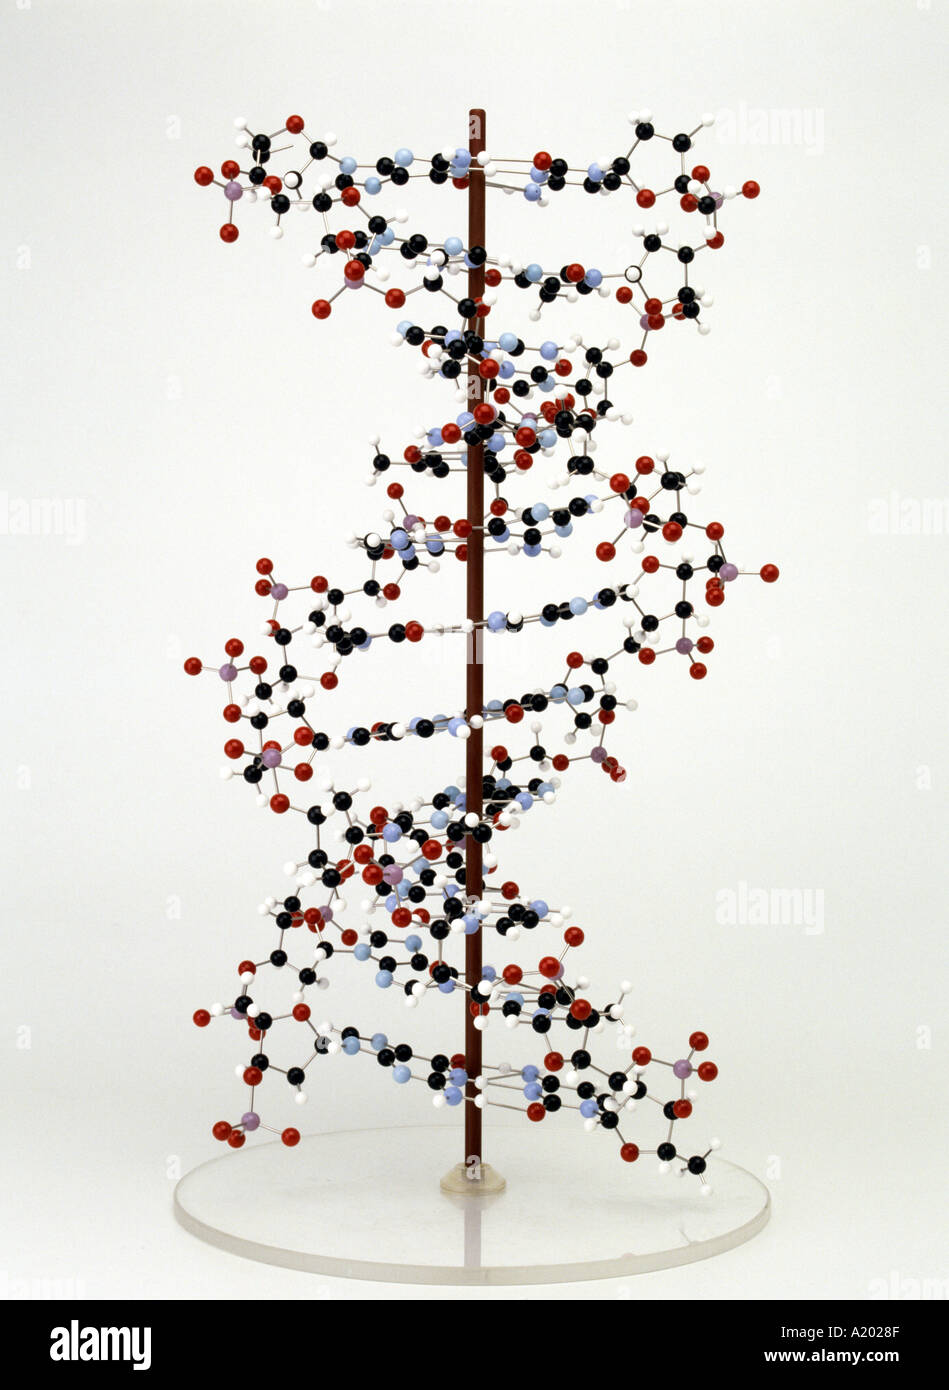 molecular model of DNA deoxyribonucleic acid vertical on stand - Stock Image